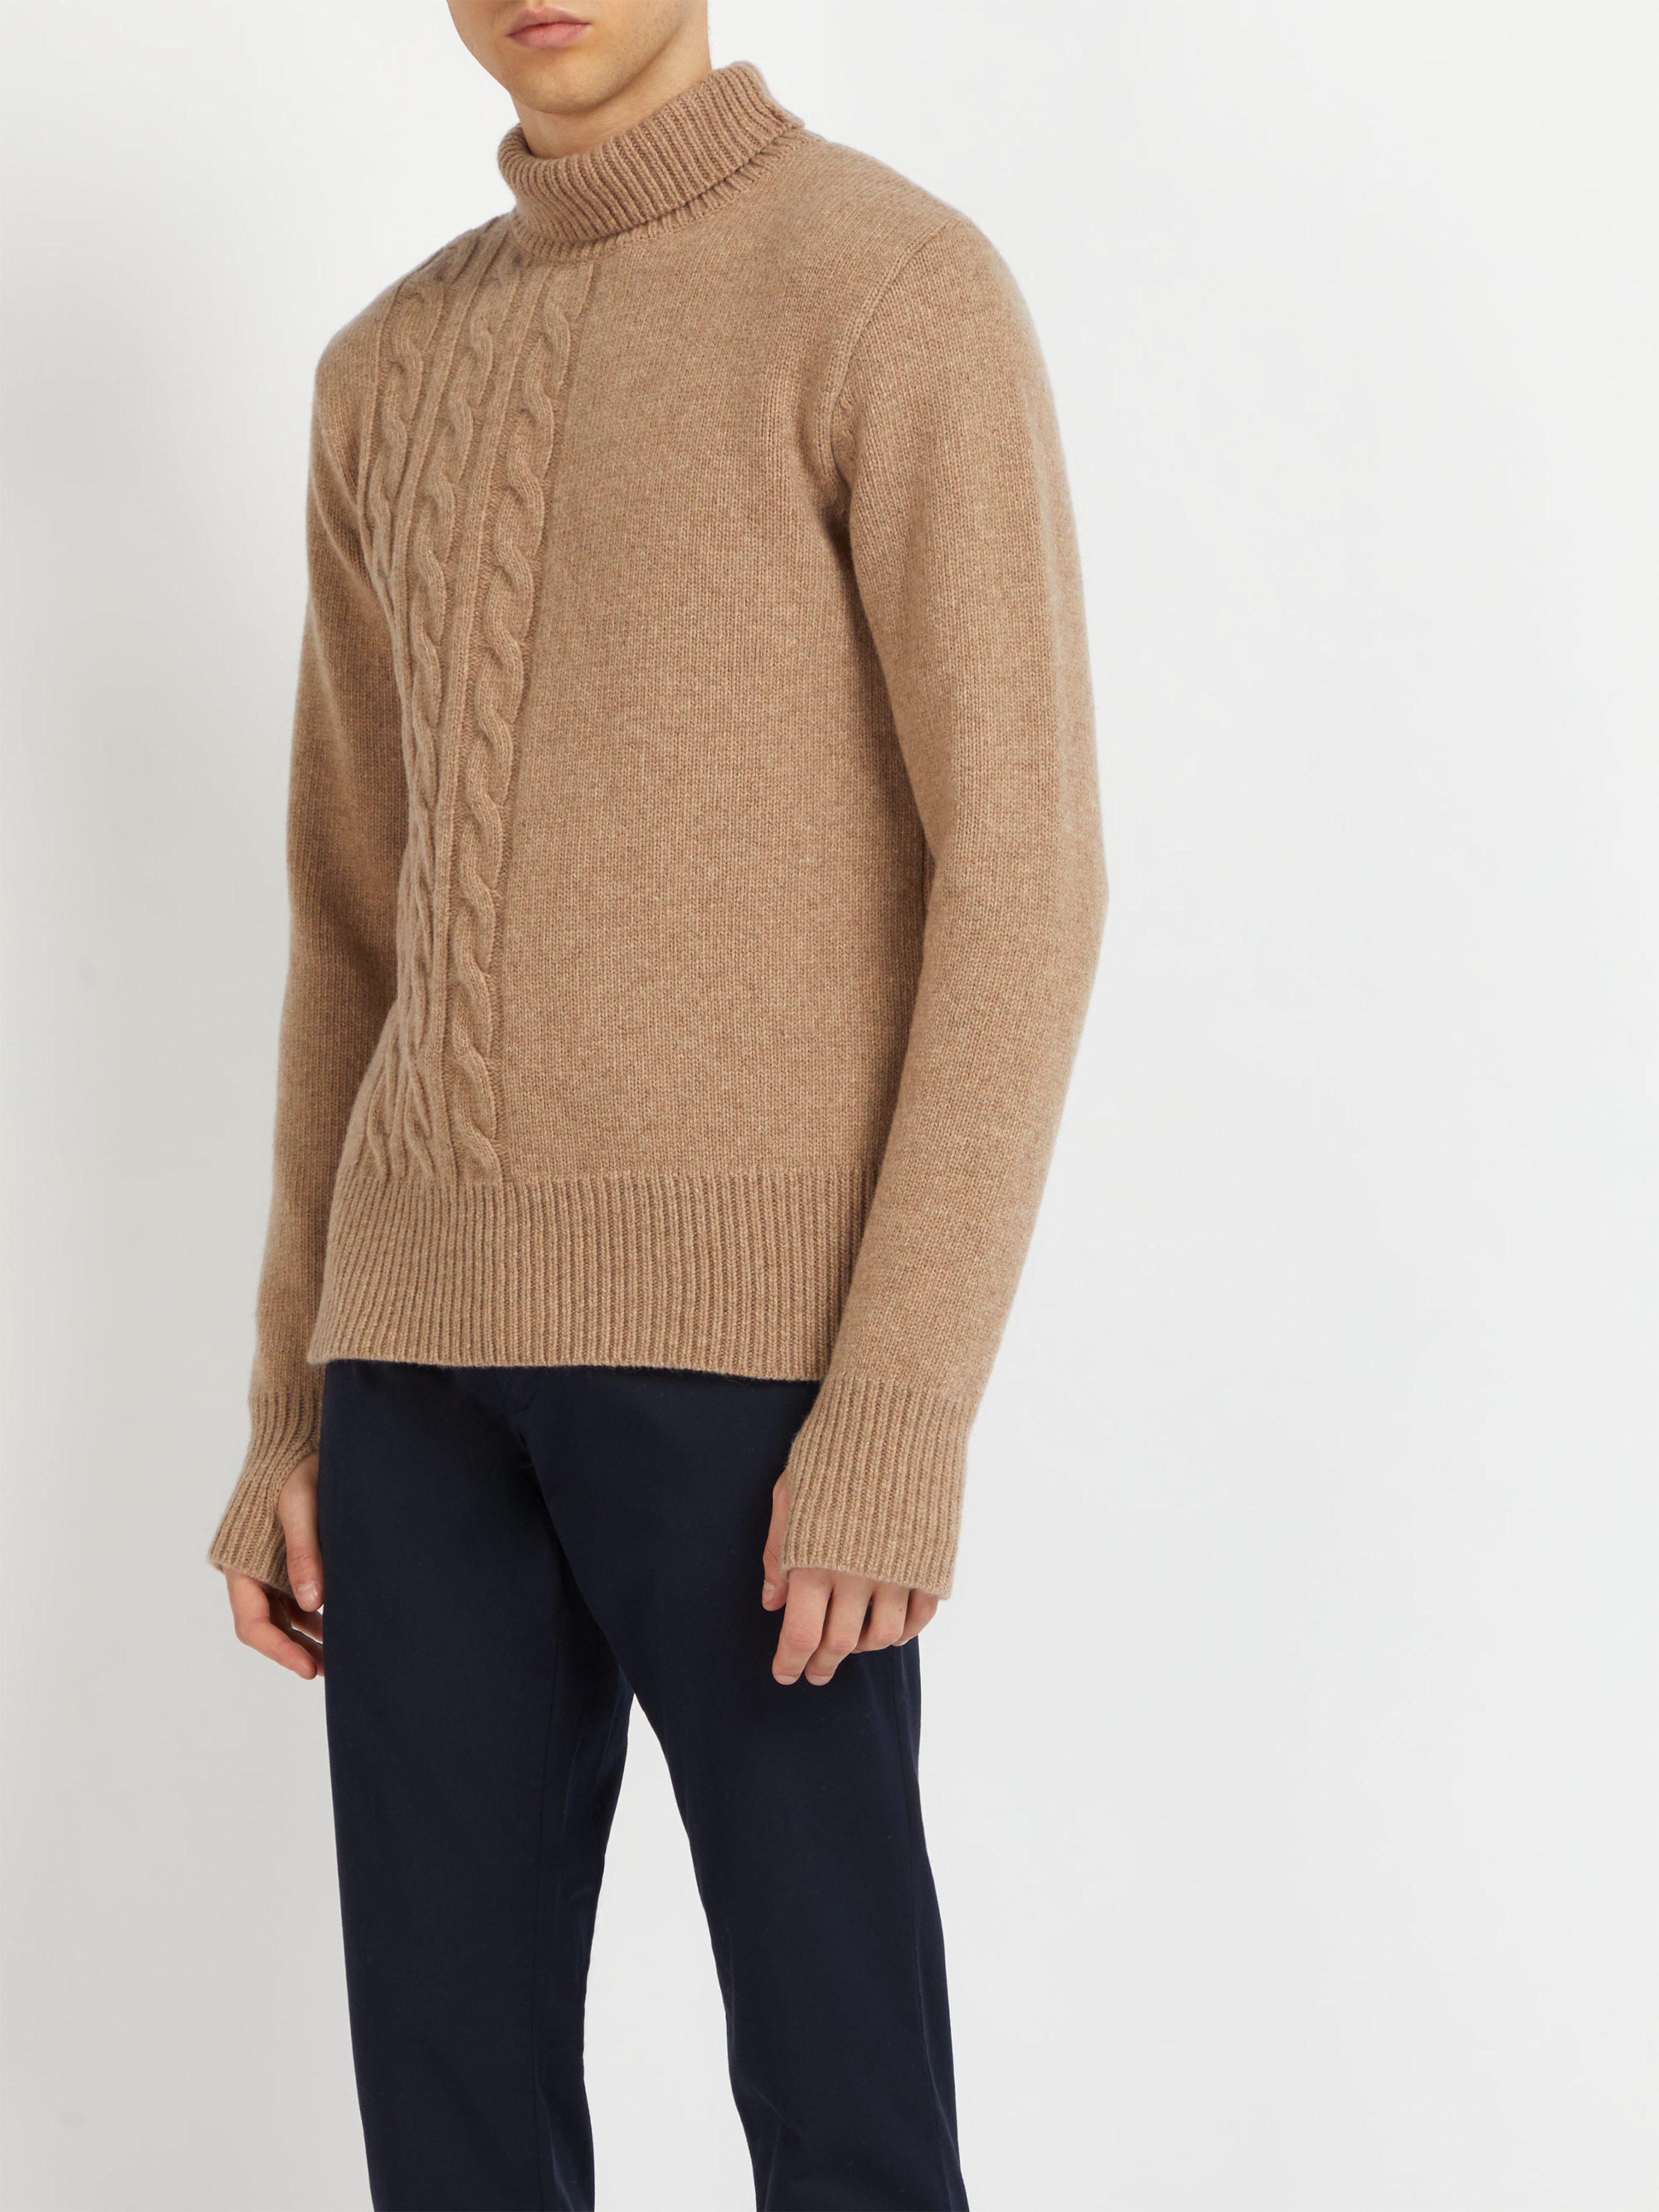 d7cbe00bf Oliver Spencer Talbot Roll Neck Wool Sweater in Natural for Men - Lyst